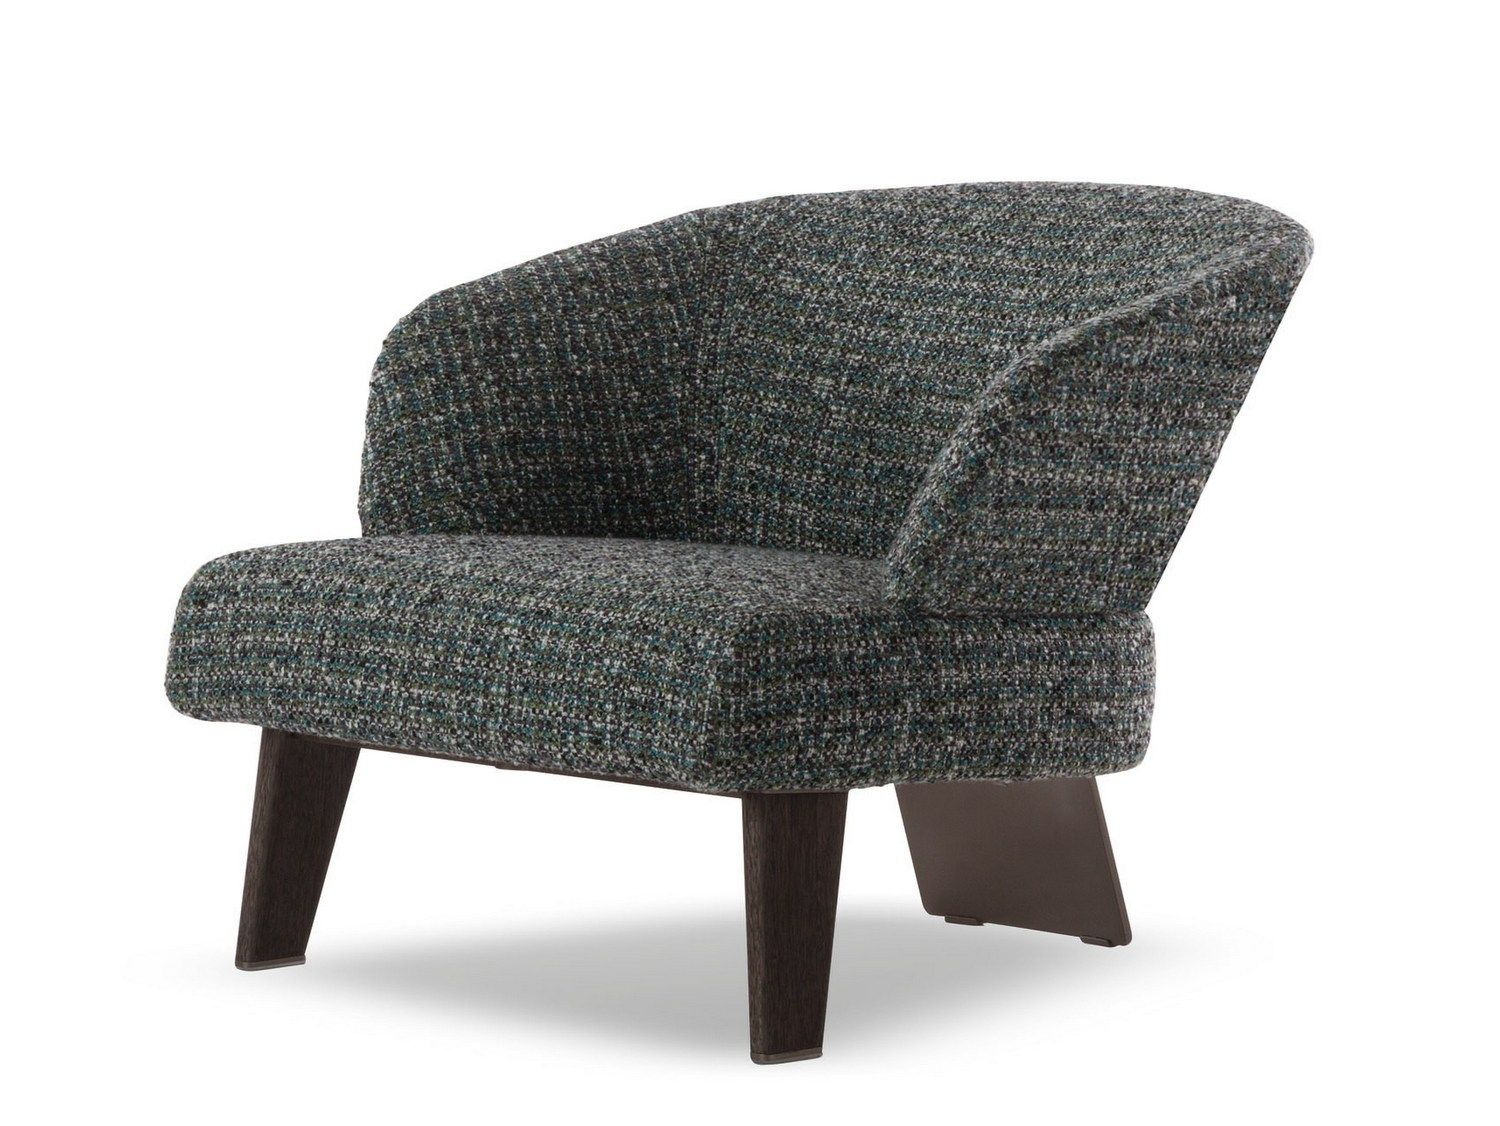 Creed Chair Minotti Google Search Furniture Lounge